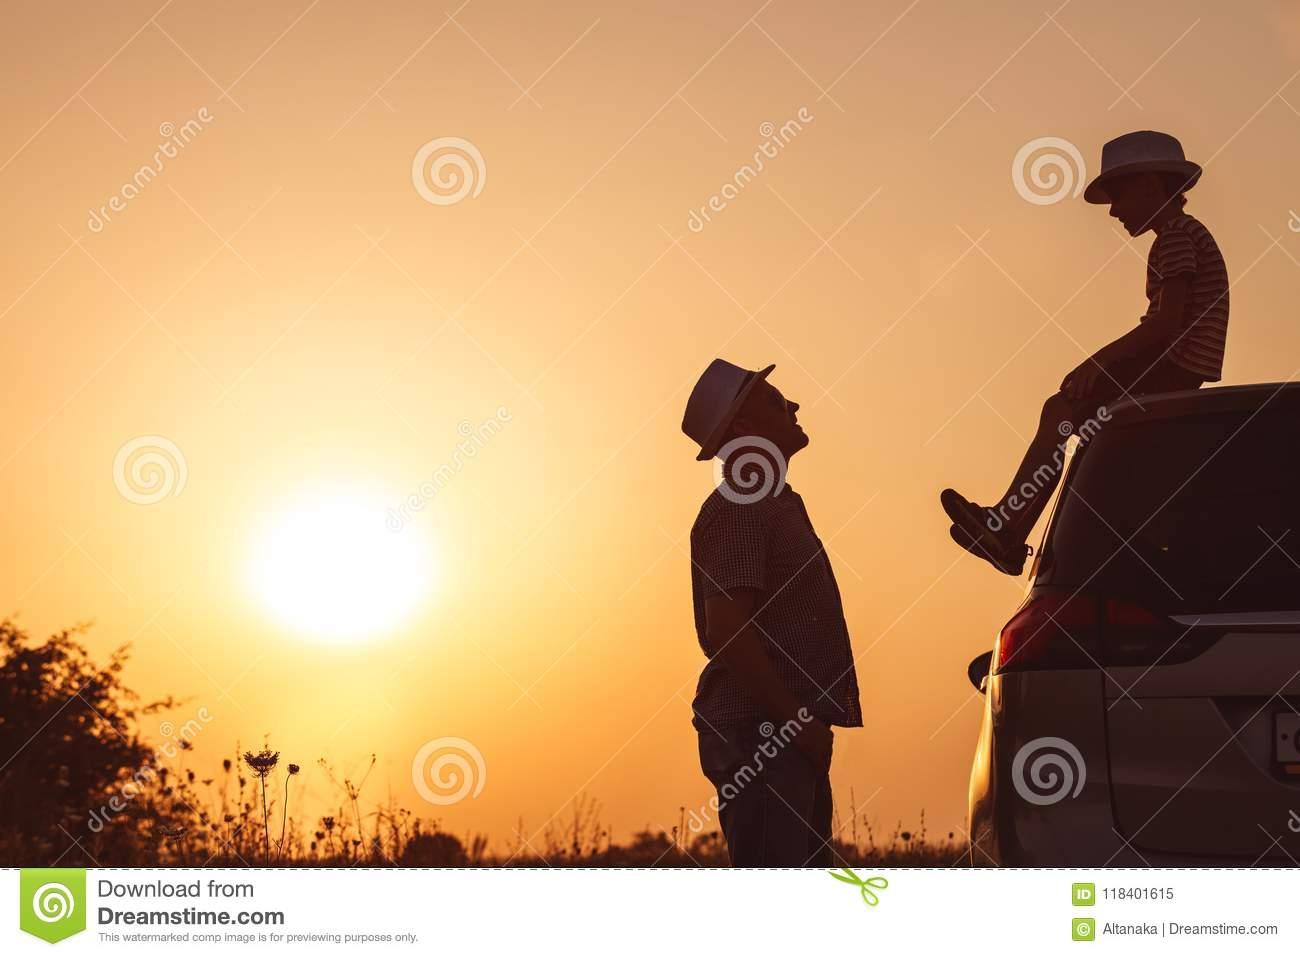 Download Father And Son Playing In The Park At The Sunset Time. Stock Image - Image of family, active: 118401615